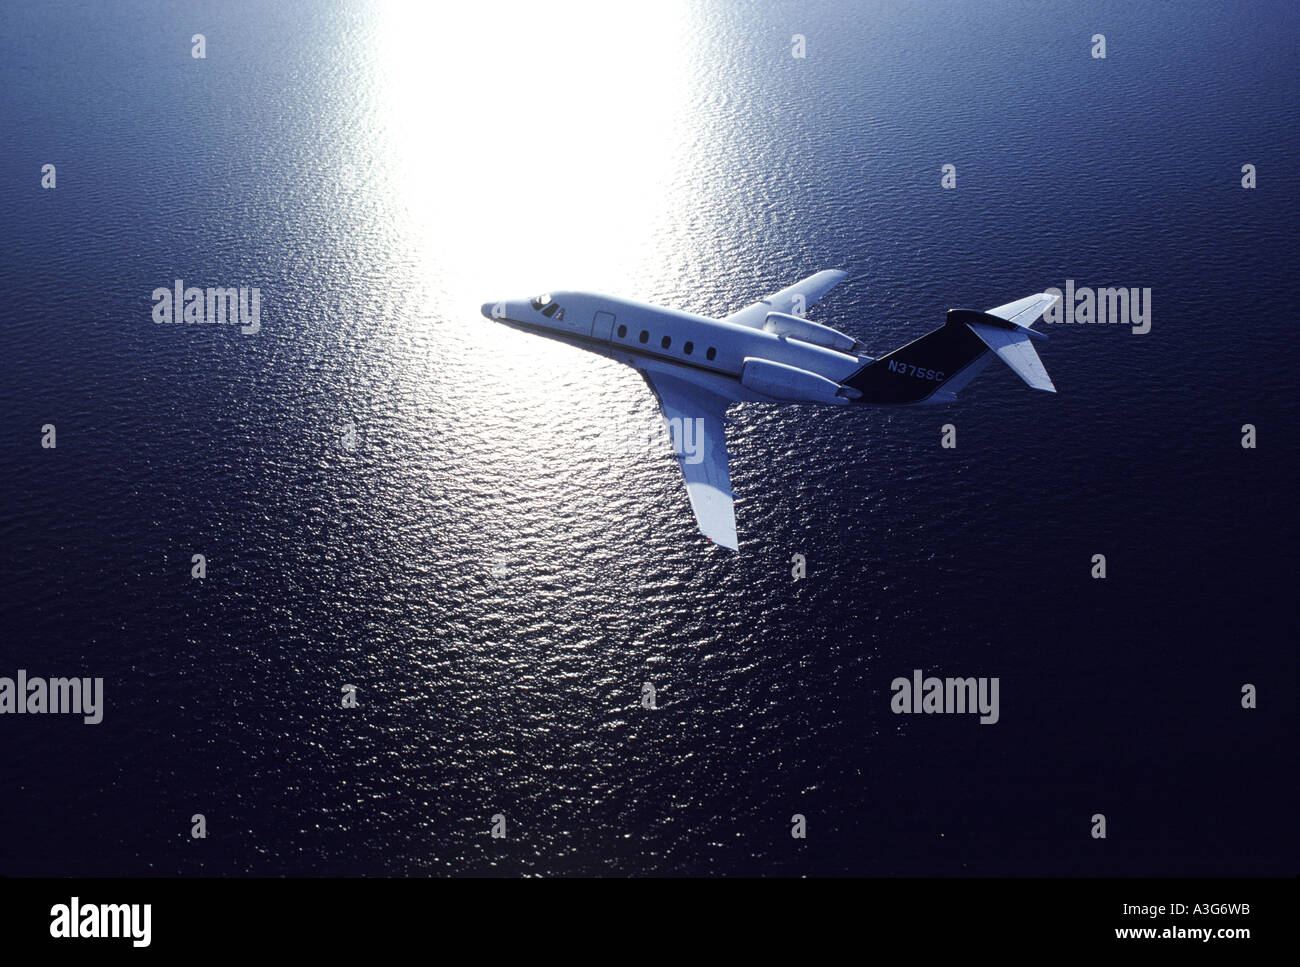 View of a luxuorious private aircraft flying over an expansive body of water as seen from above - Stock Image